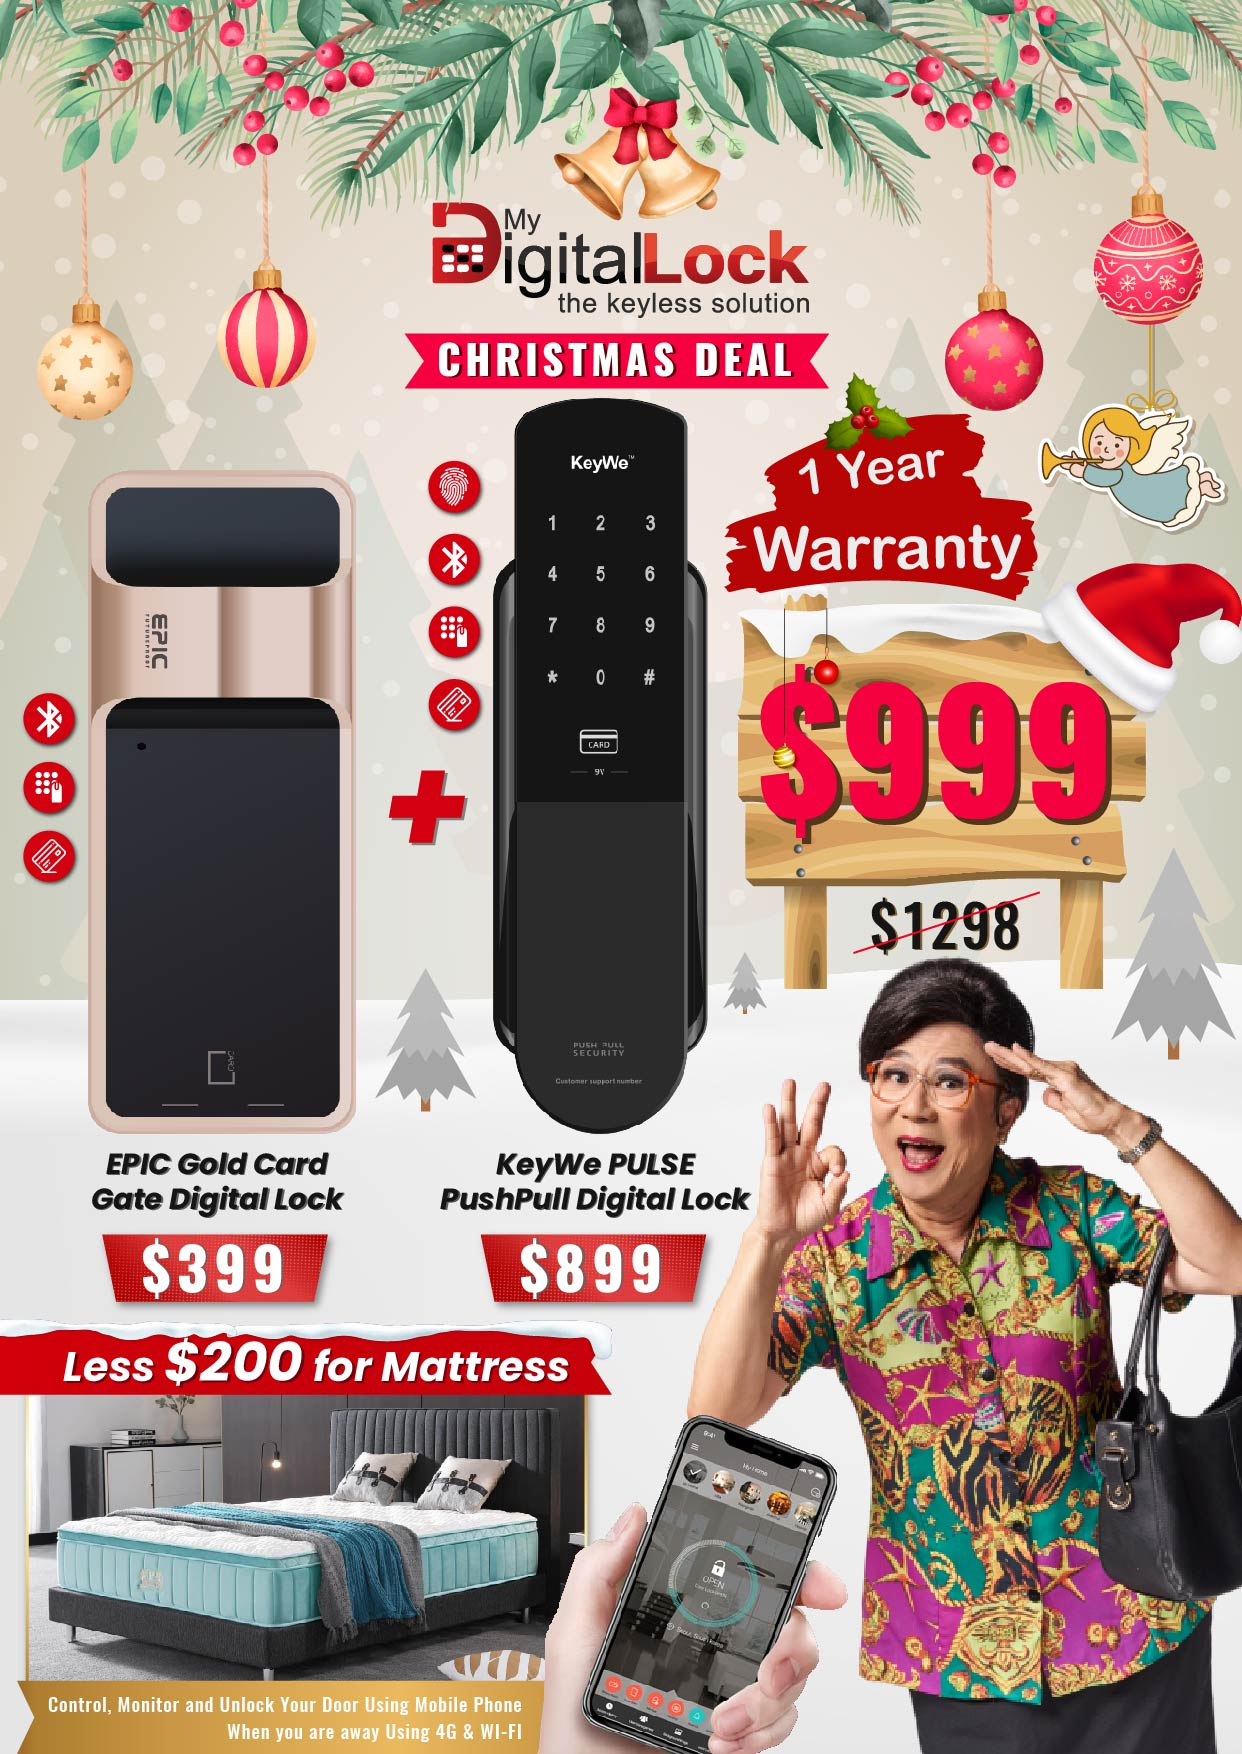 My Digital Lock EPIC Gold Card Gate and KeyWe Pulse PushPull Digital Lock Christmas Promotion 2019